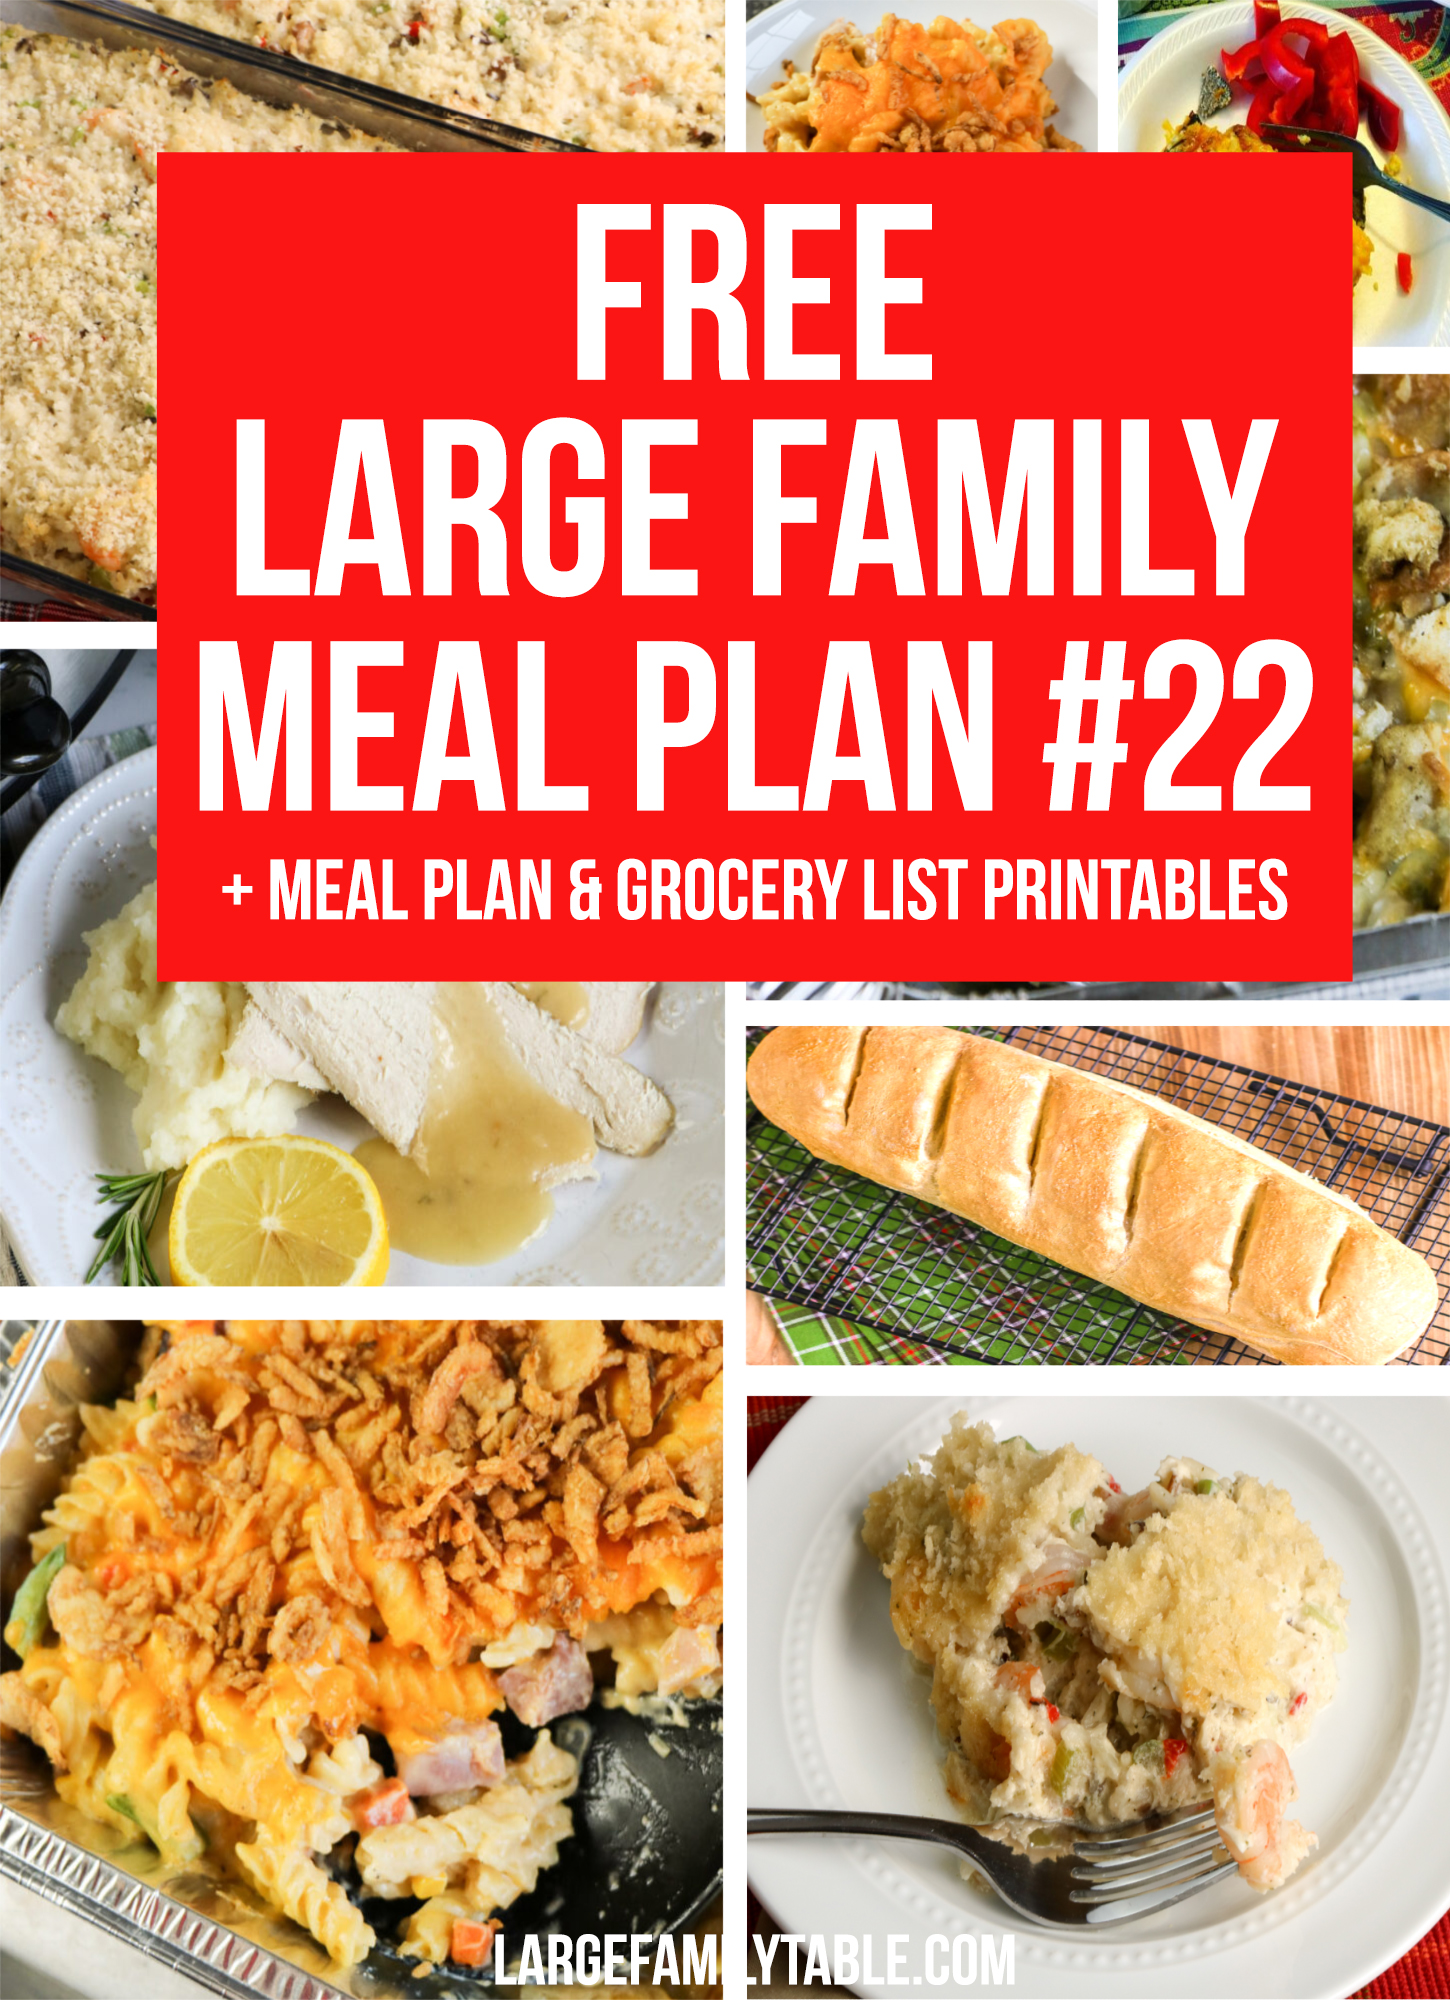 Week 22 Large Family Meal Plan Free Grocery List Printables For A Large Family On A Budget Large Family Table